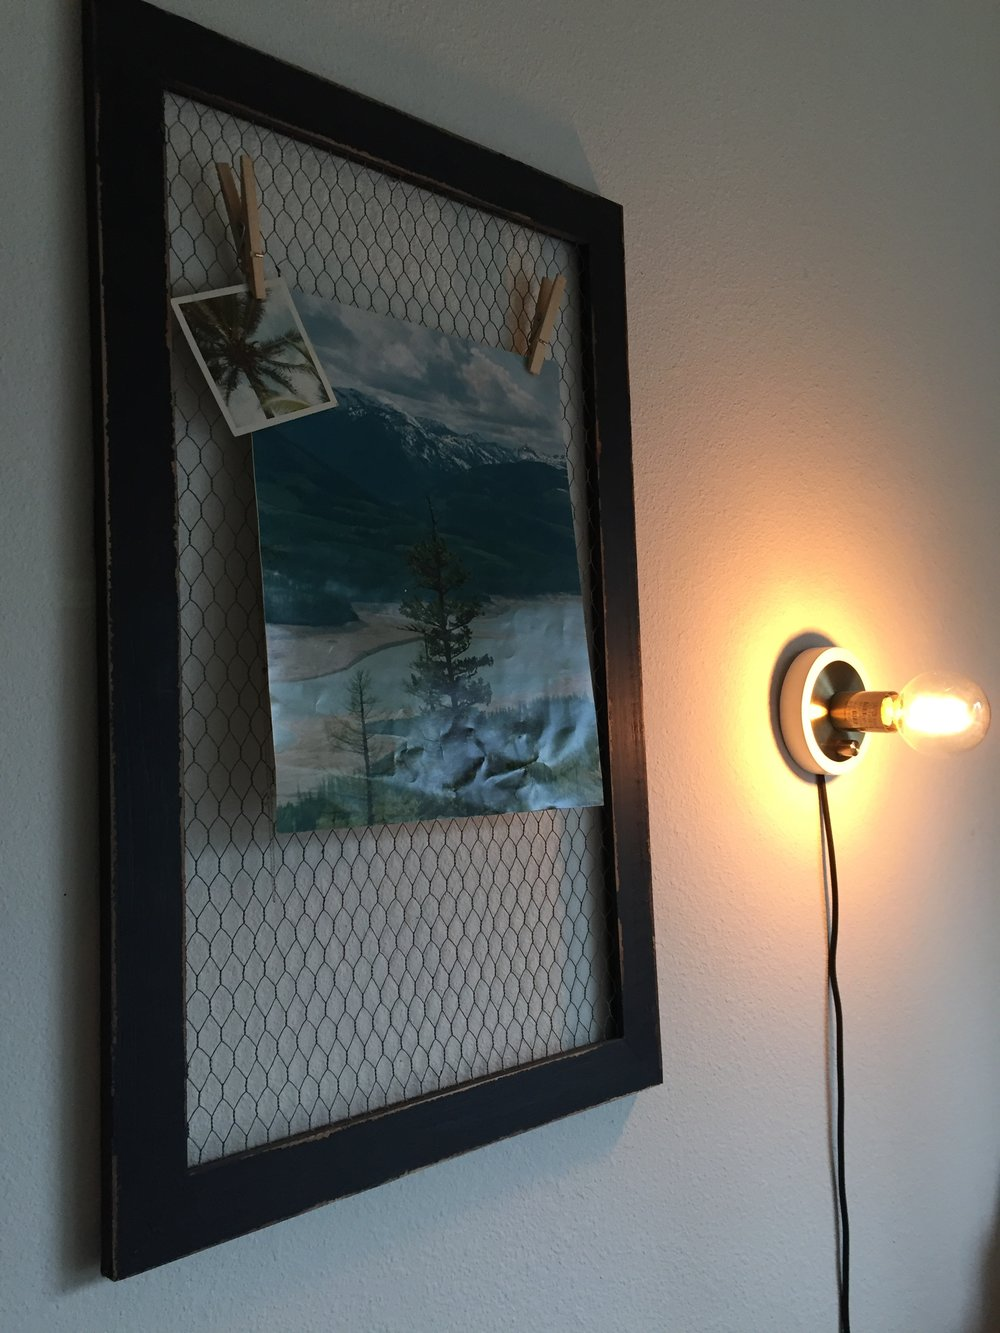 Riddance Home Wiring A Single Bulb Light Fixture Simple Wire Board To Display Photos Accented By Creates Warm Glow And Sense Of Openess In This Space